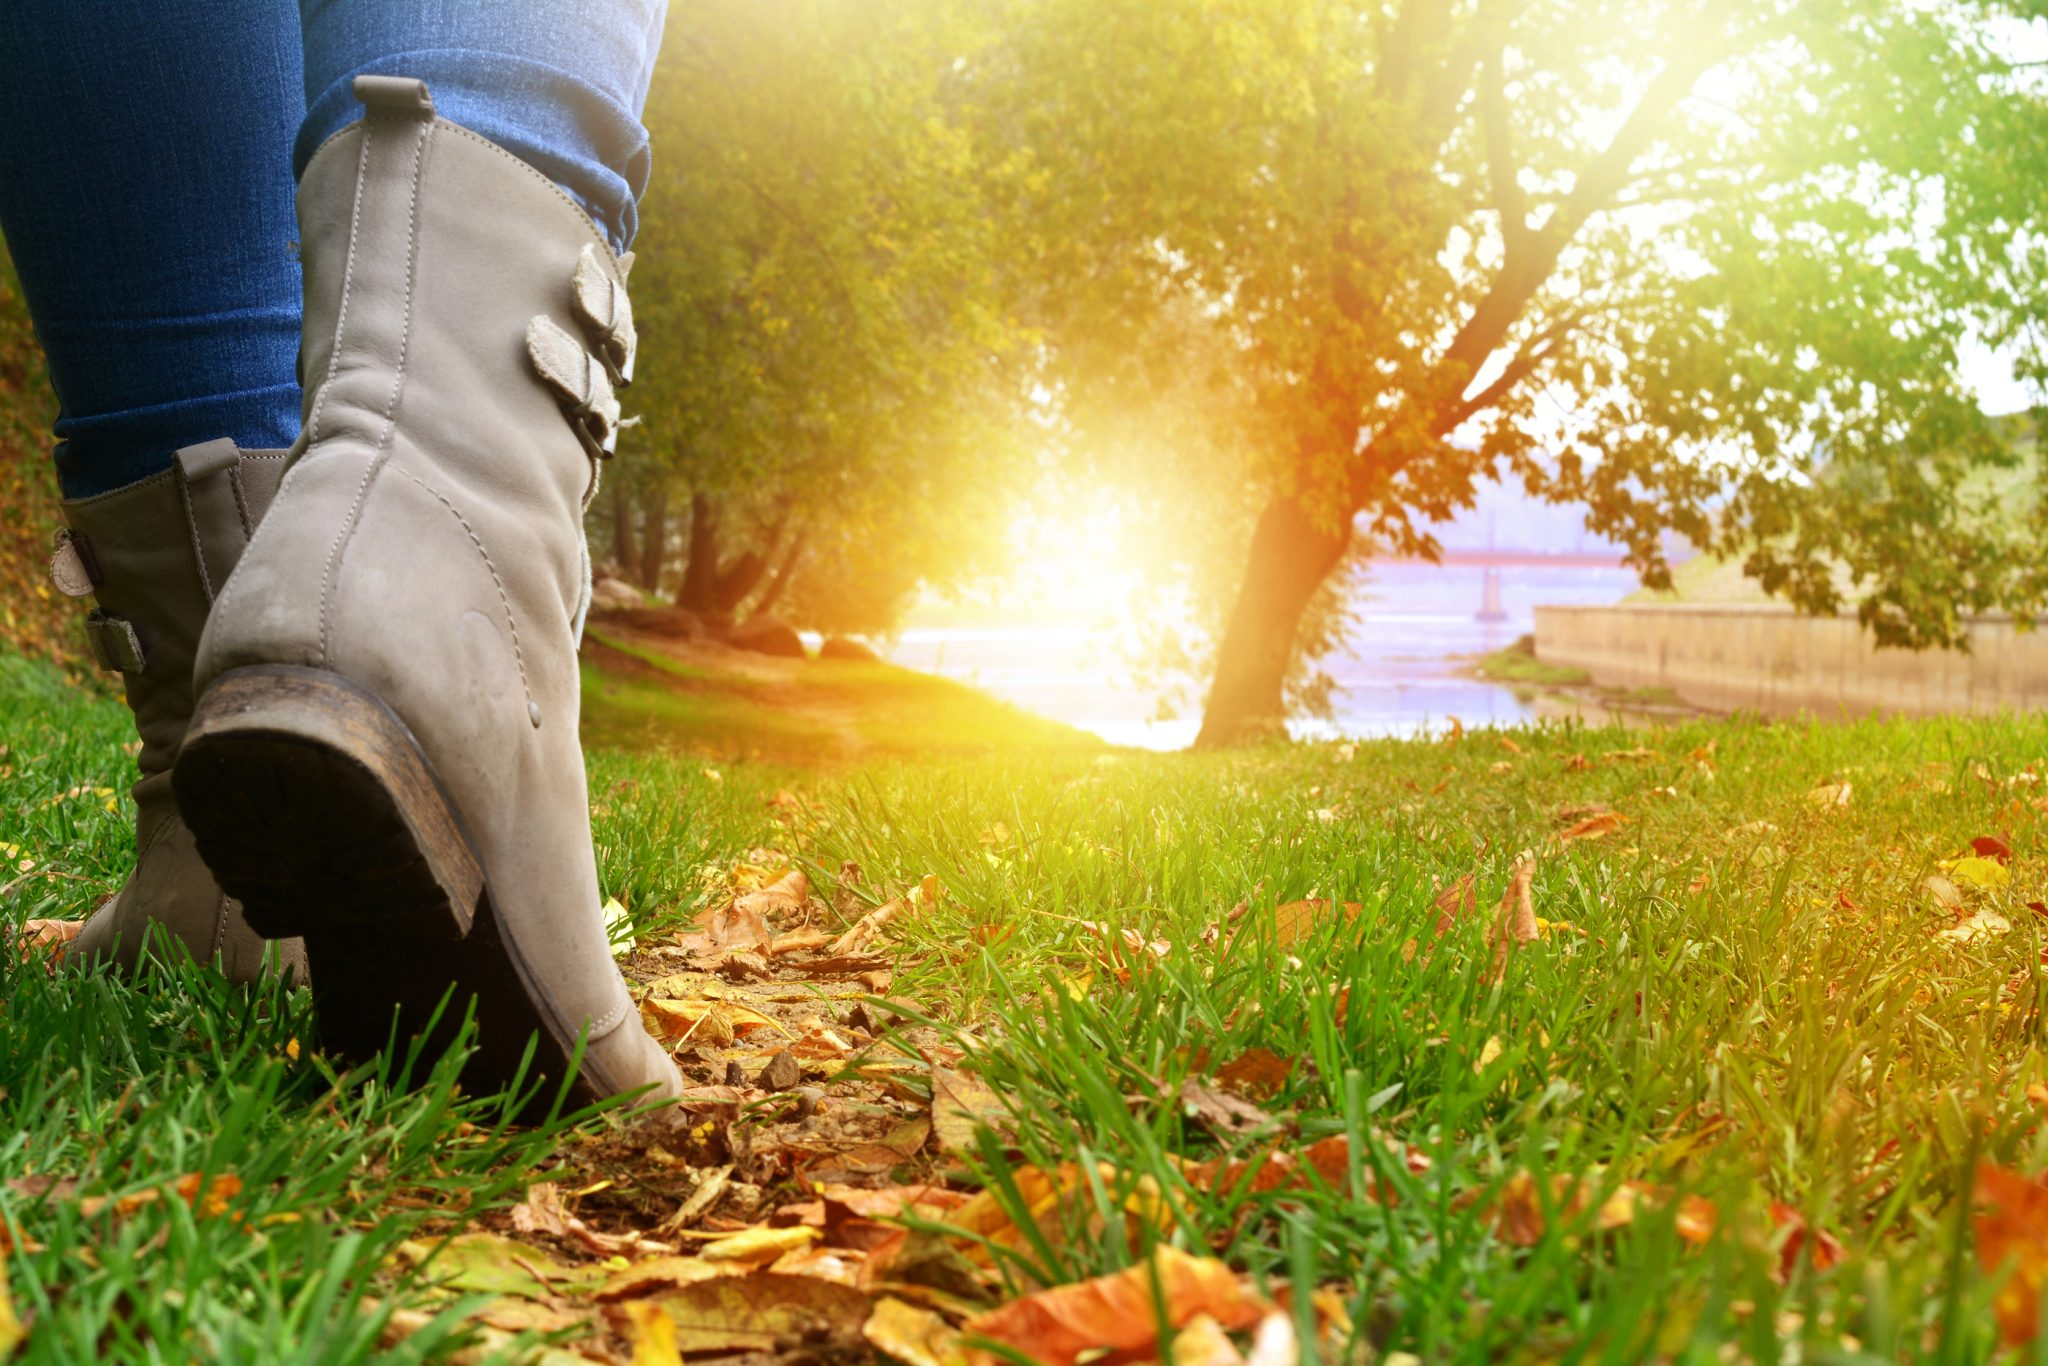 woman's boots walking through leaves on a path up a hill